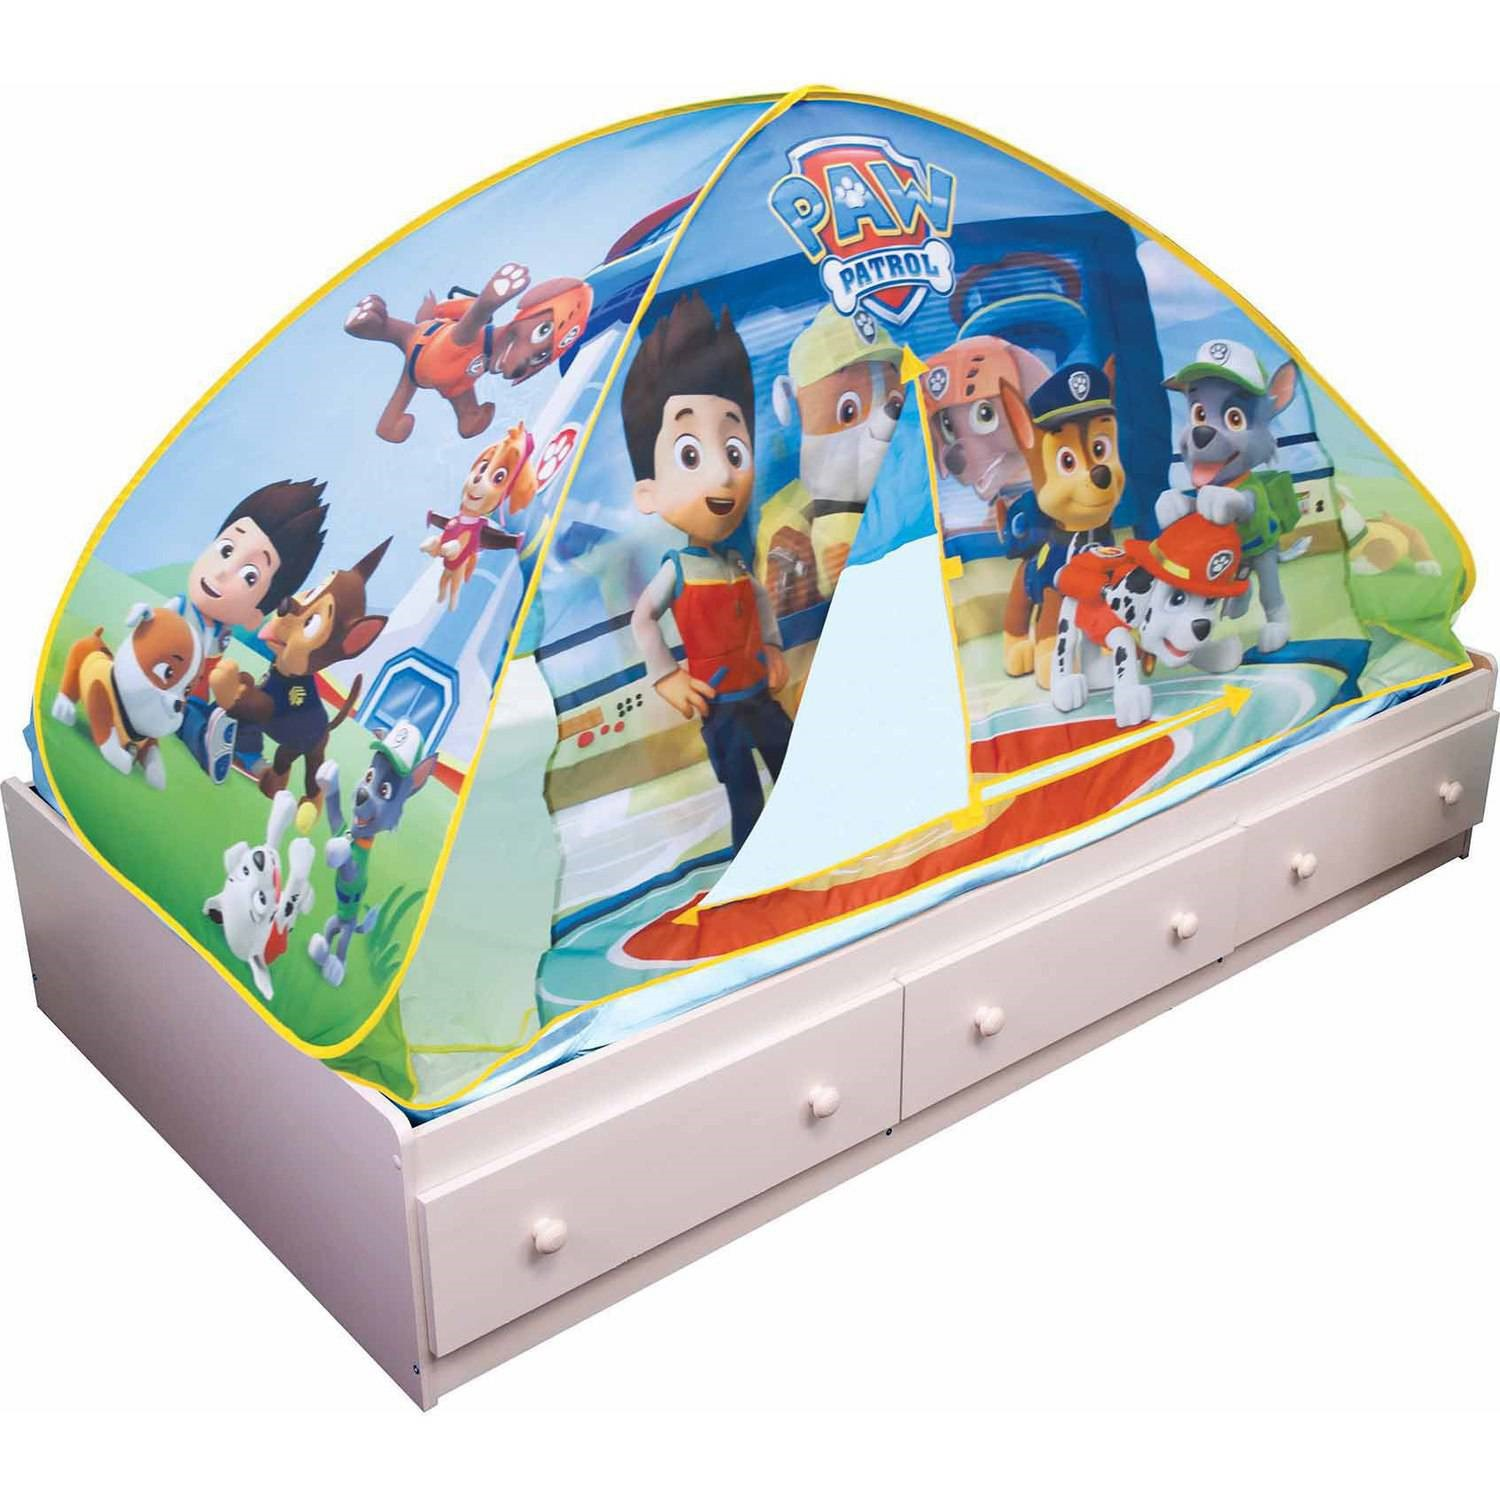 Playhut Nickelodeon Paw Patrol 2-in-1 Tent  sc 1 st  Walmart.com : playhut pop up tent - memphite.com